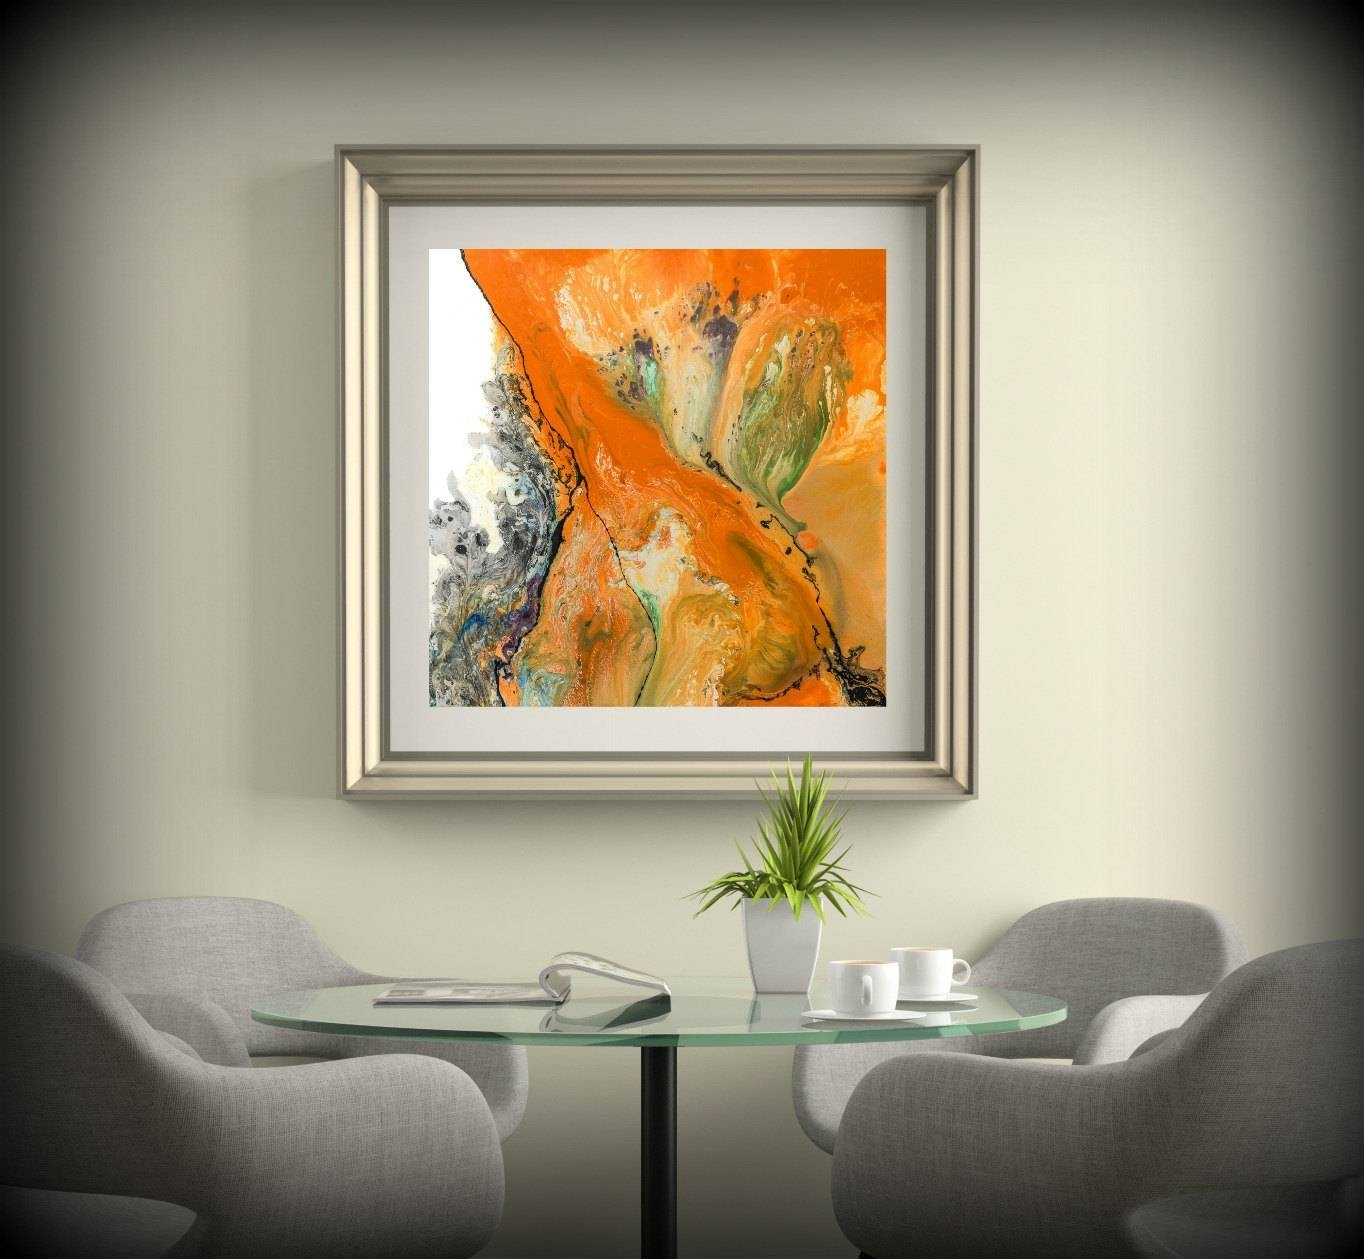 Living Room Decor Square Wall Decor Orange Wall Art Dining Room With Most Up To Date 48X48 Canvas Wall Art (View 14 of 20)